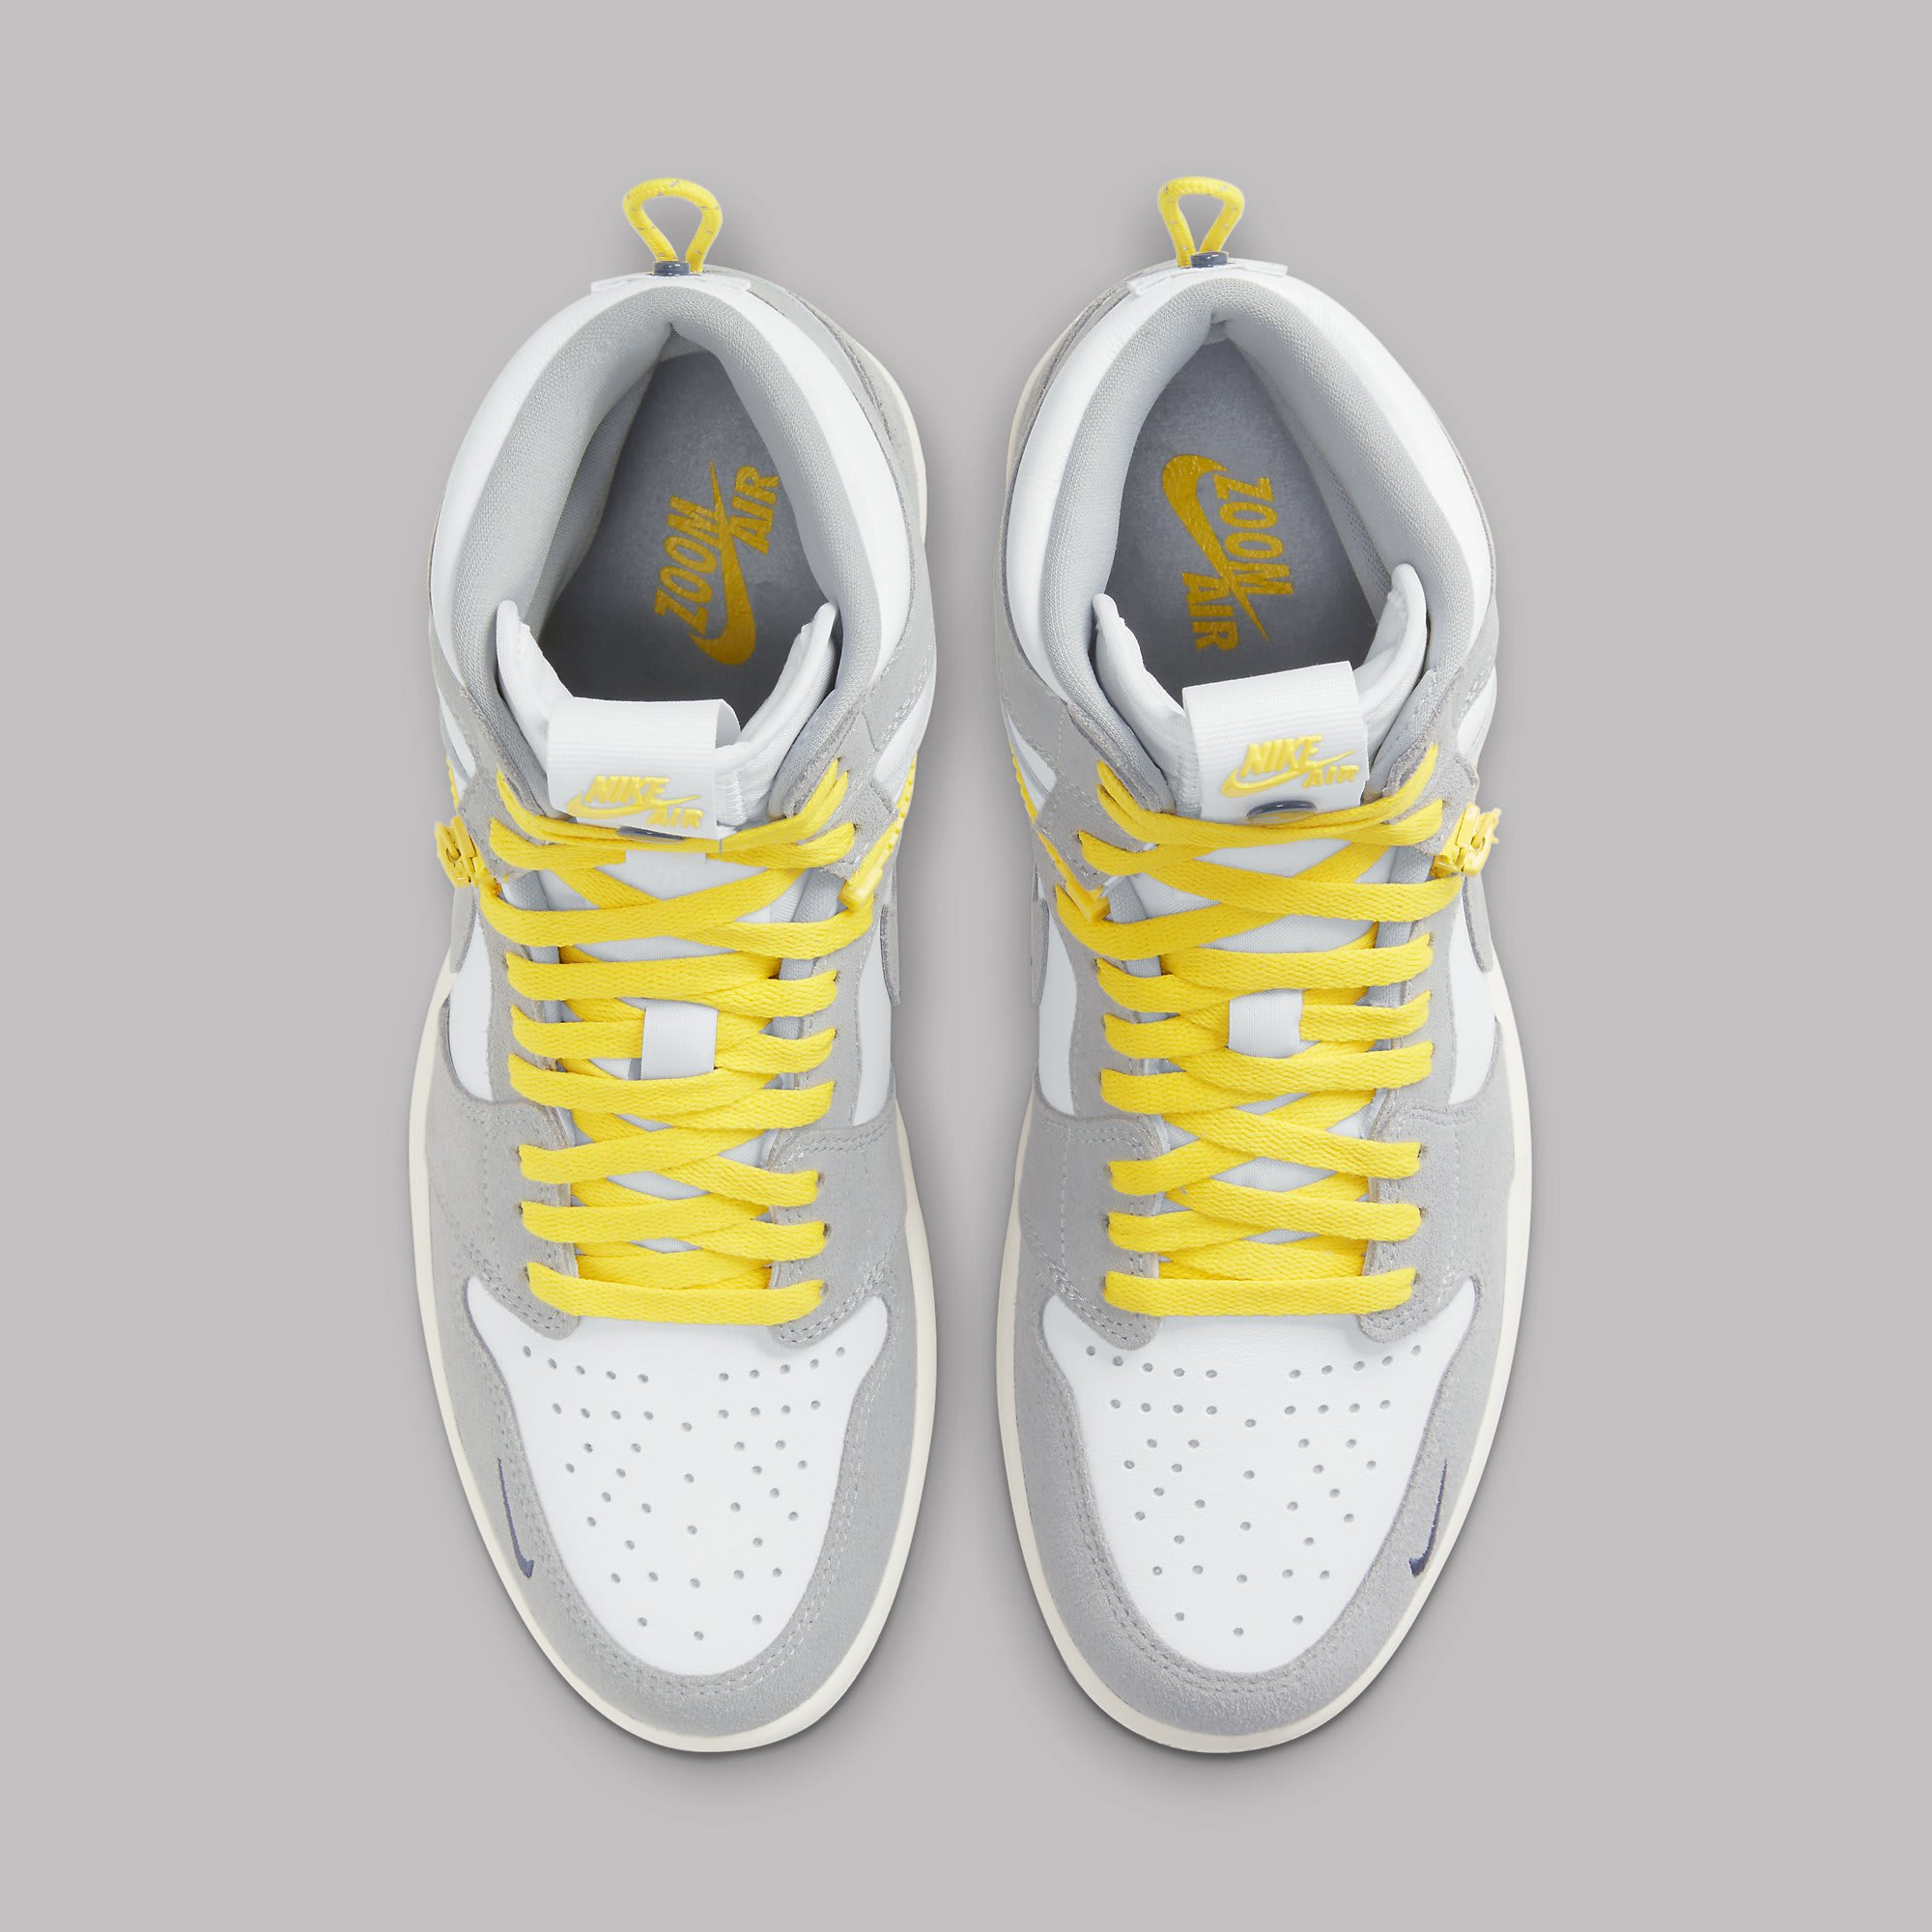 Air Jordan 1 High Switch White Light Smoke Grey Sail Tour Yellow Release Date CW6576-100 Top